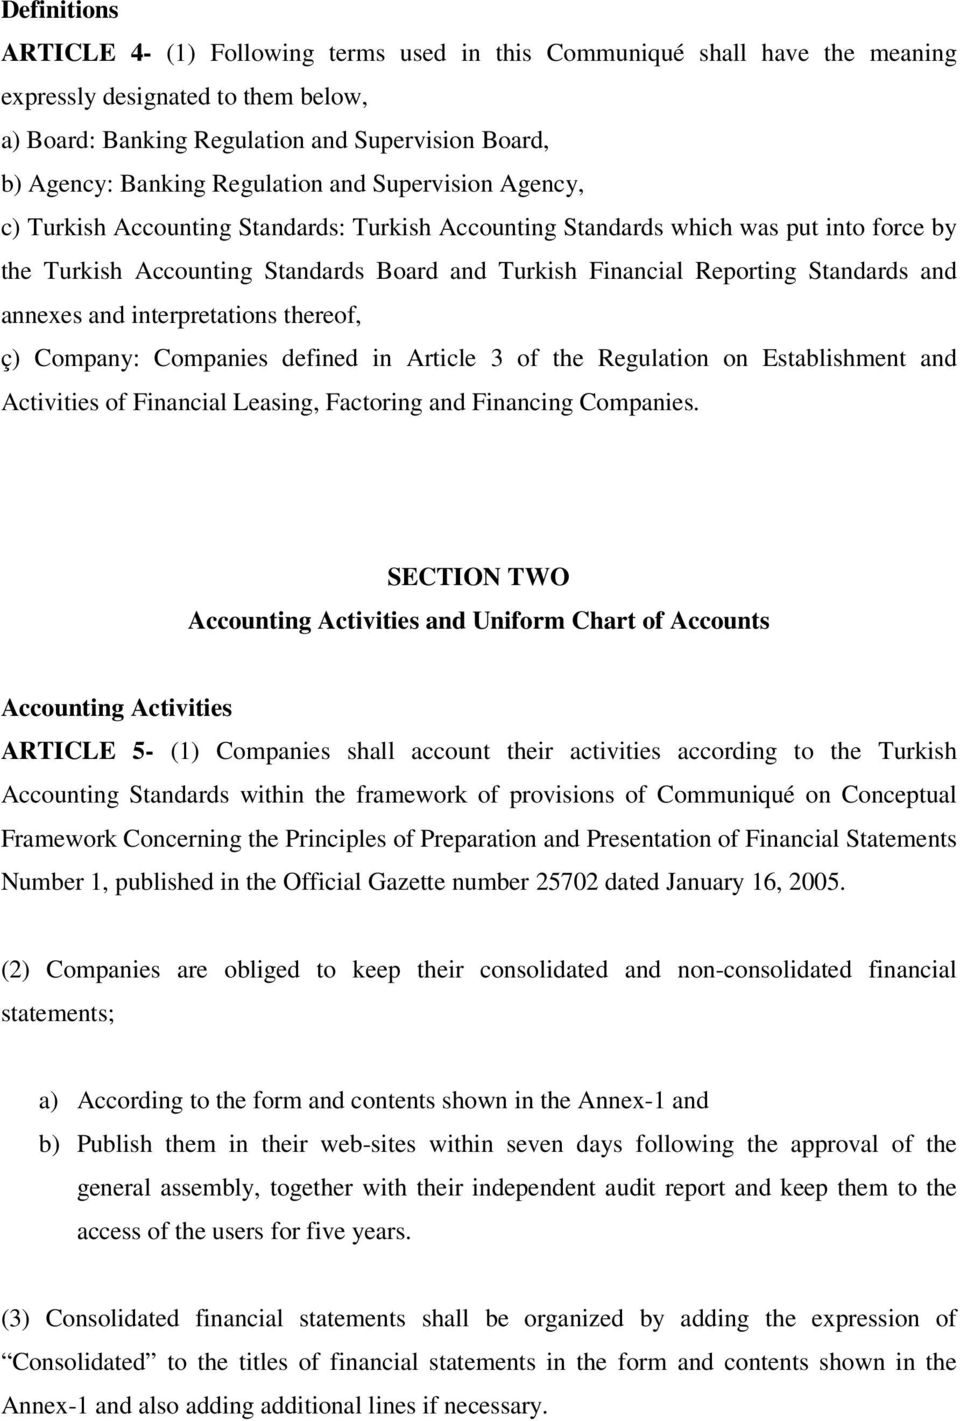 Standards and annexes and interpretations thereof, ç) Company: Companies defined in Article 3 of the Regulation on Establishment and Activities of Financial Leasing, Factoring and Financing Companies.